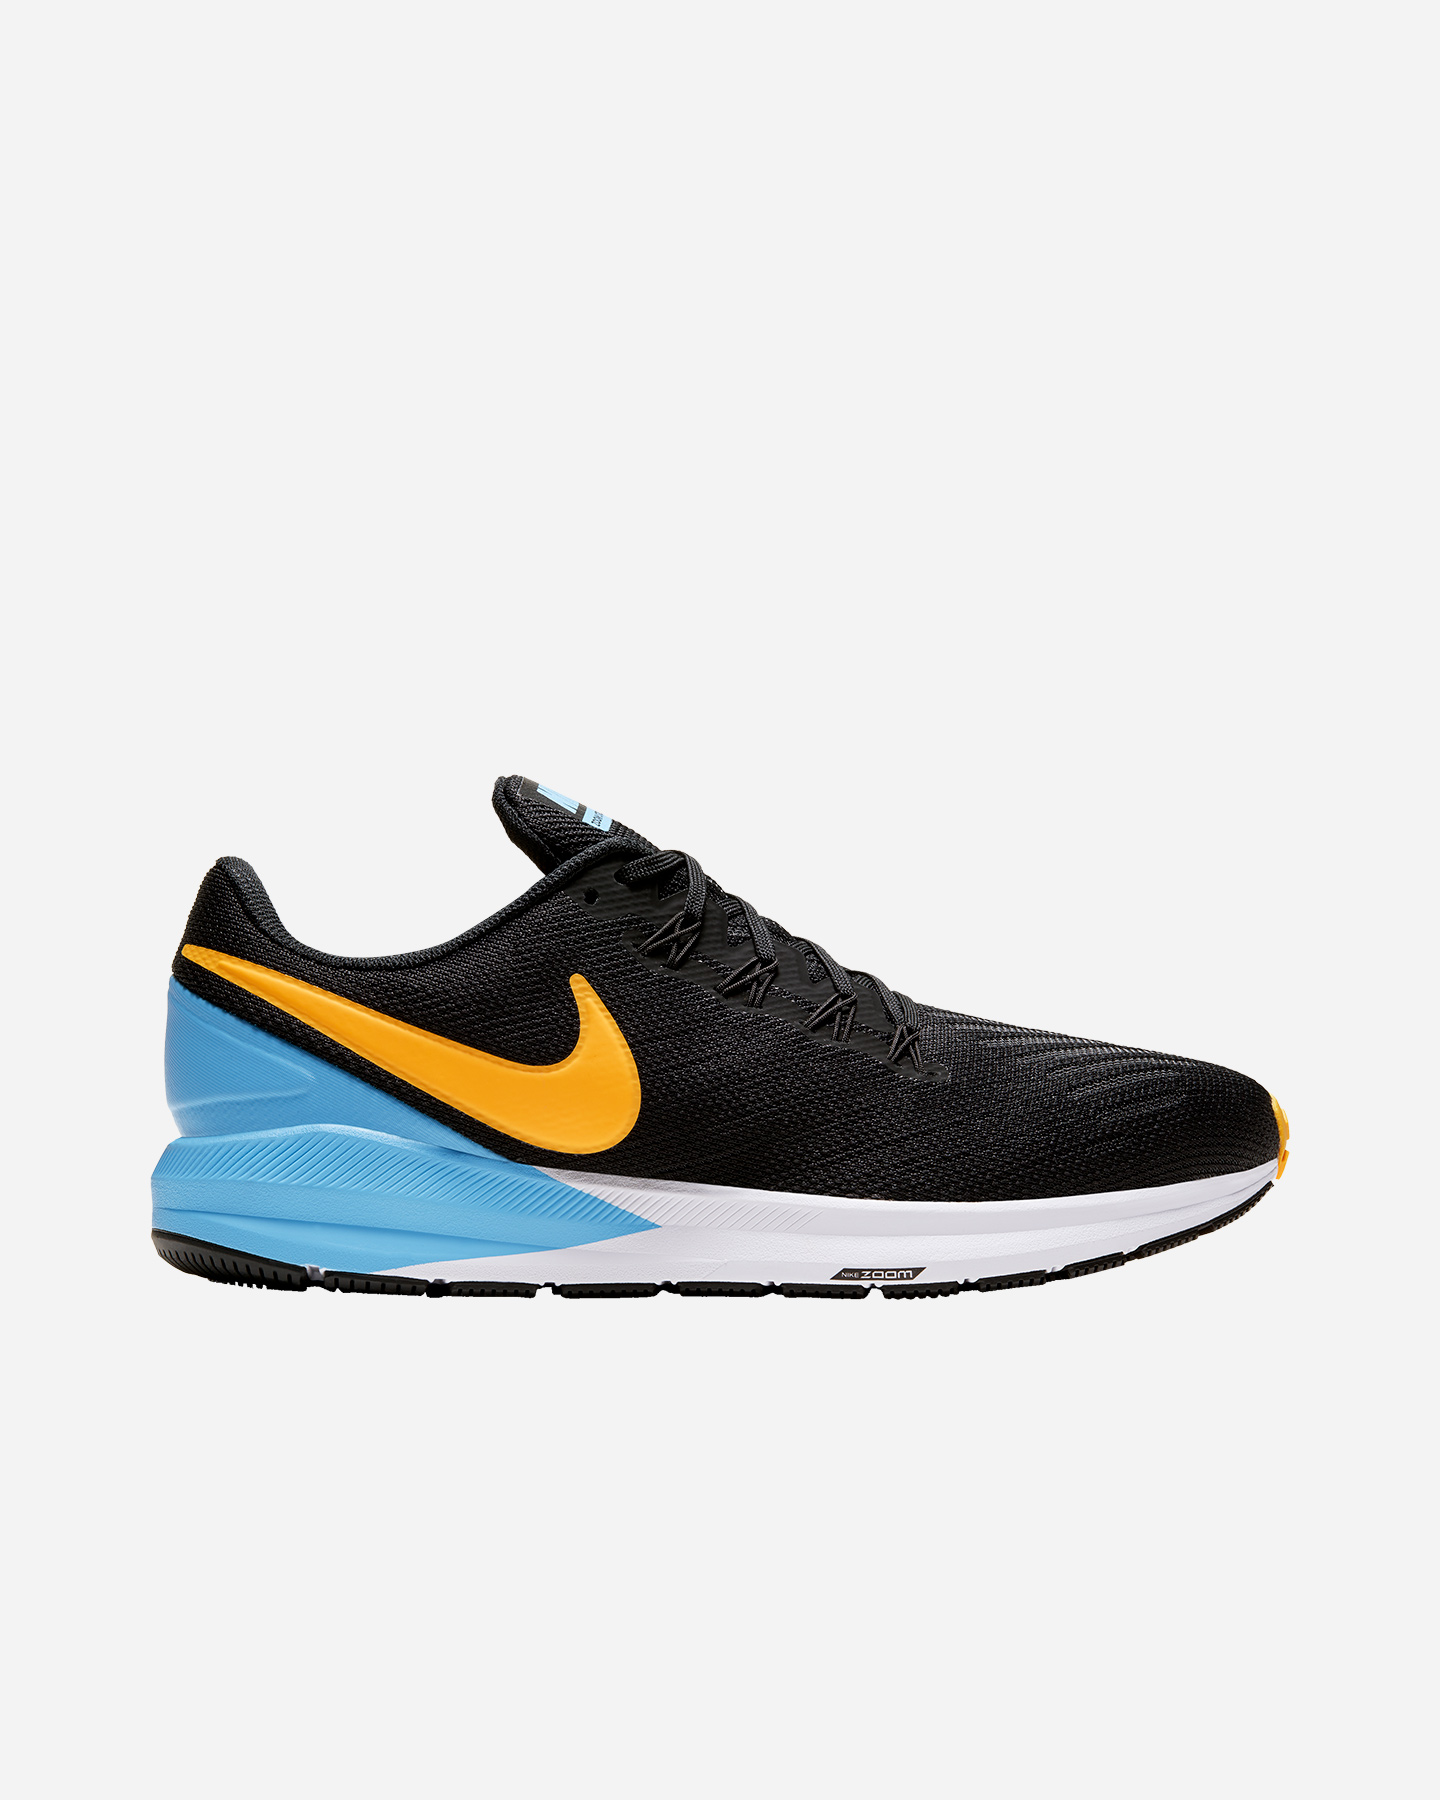 NIKE - AIR ZOOM STRUCTURE 22 M